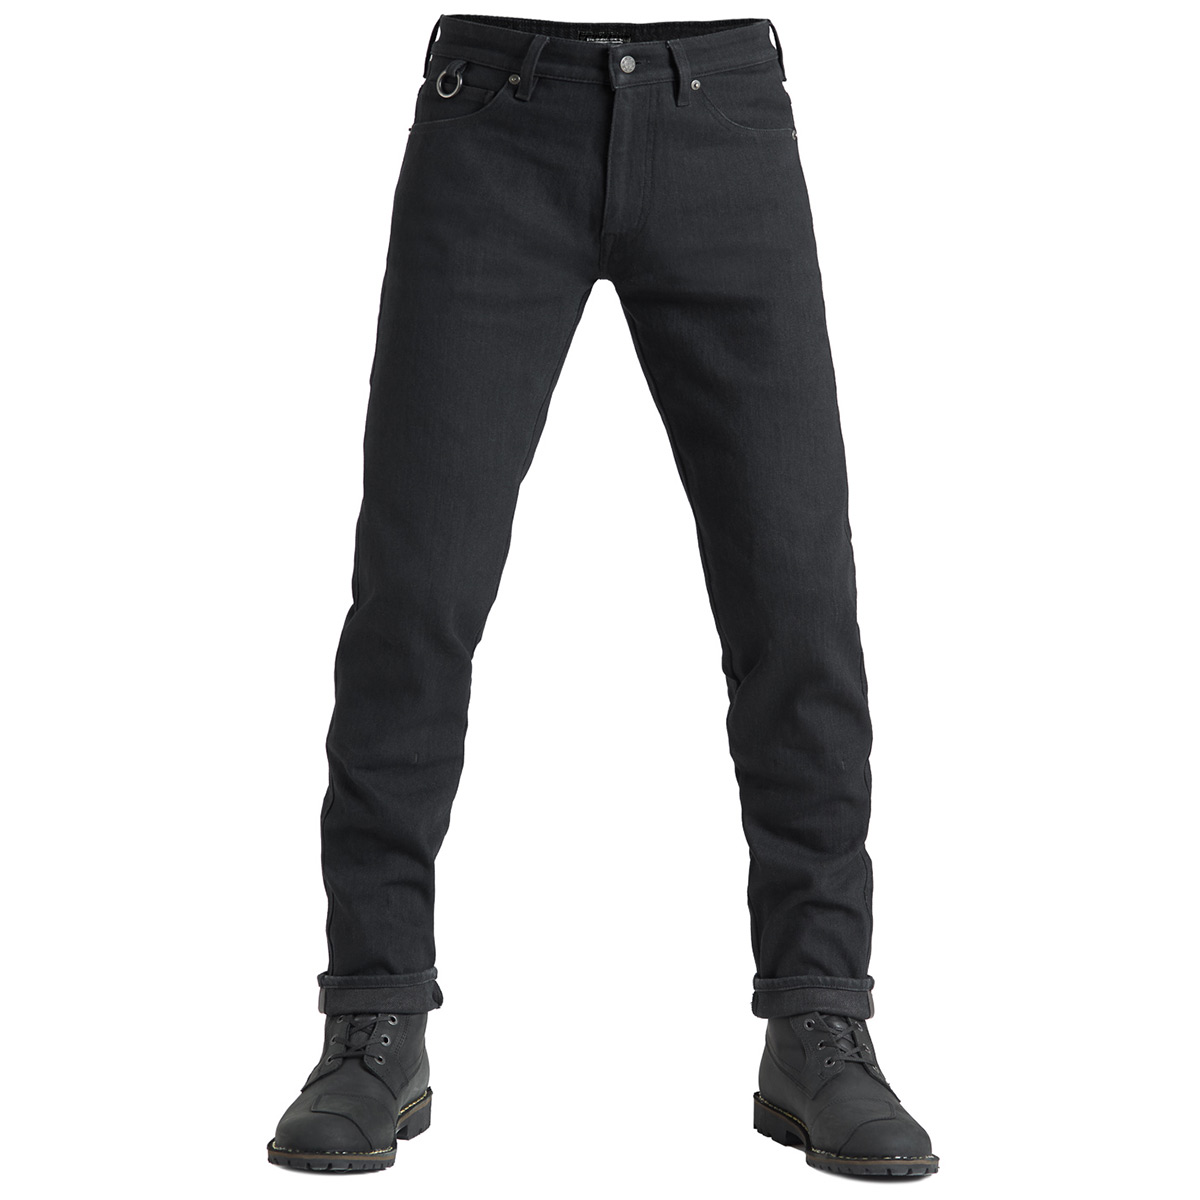 Pando Moto Steel Black 02 Men's Jeans